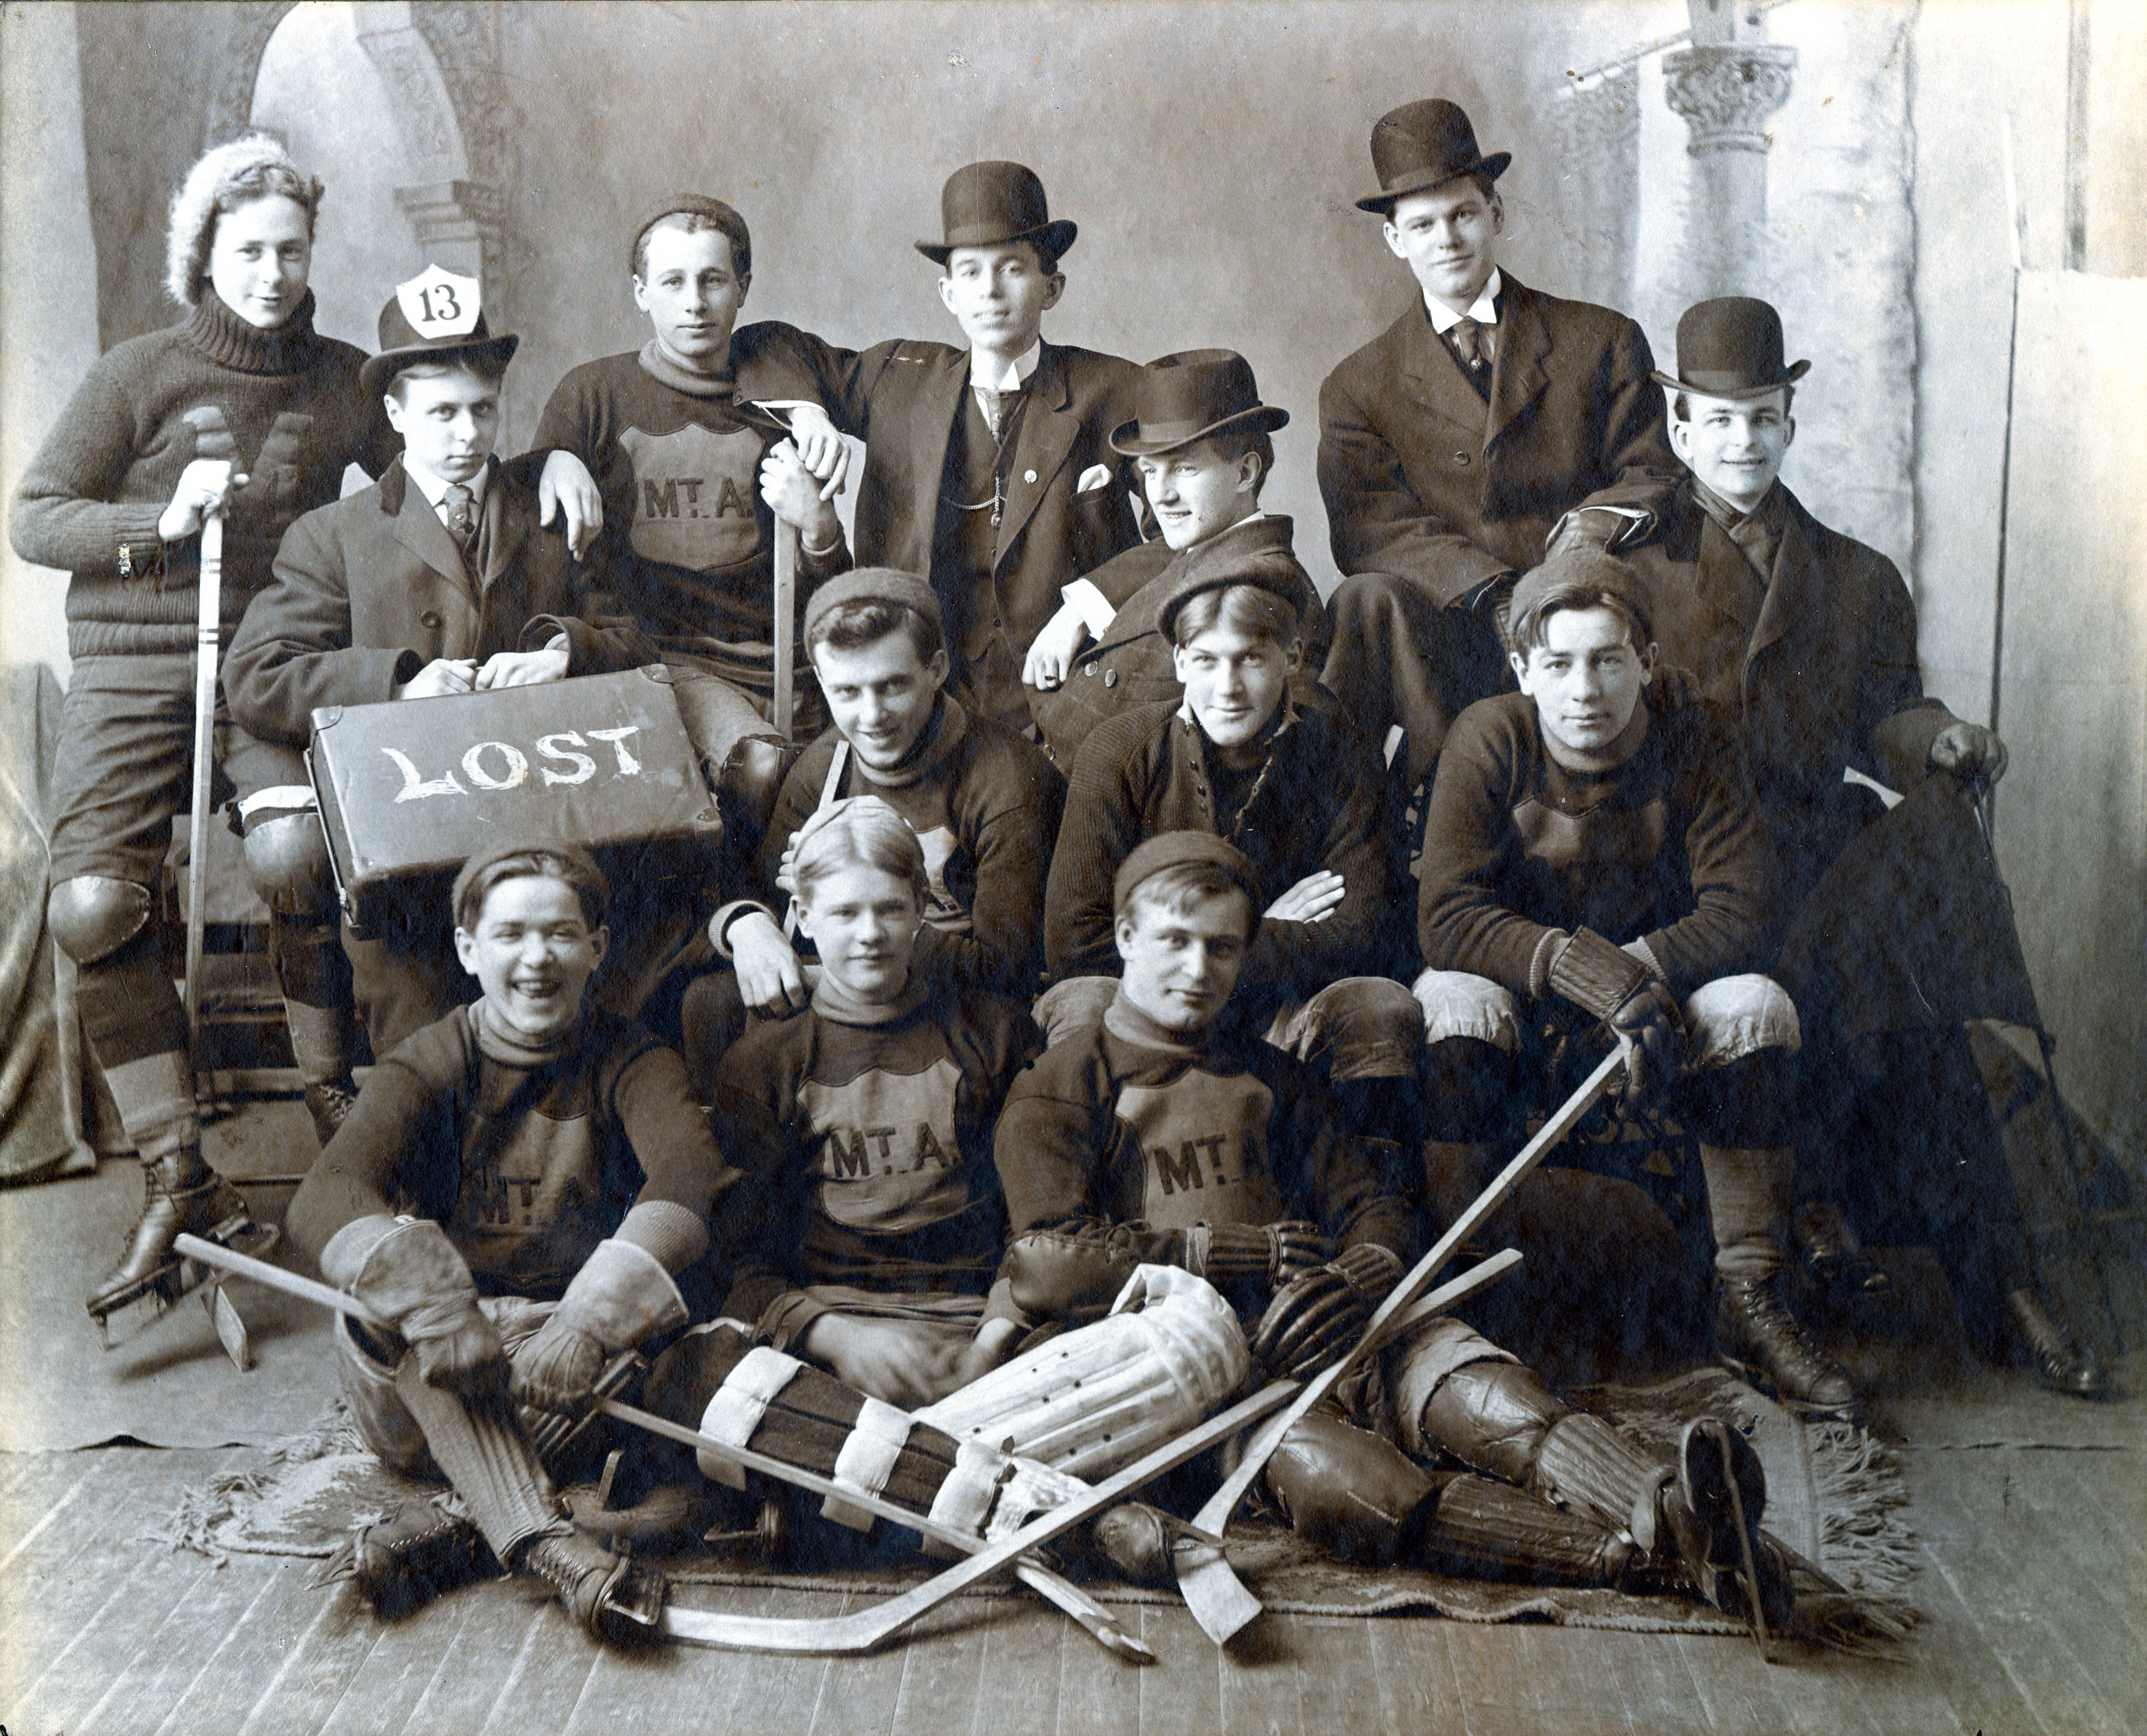 Group picture of members of the hockey team in their sports uniform with additional costume props.